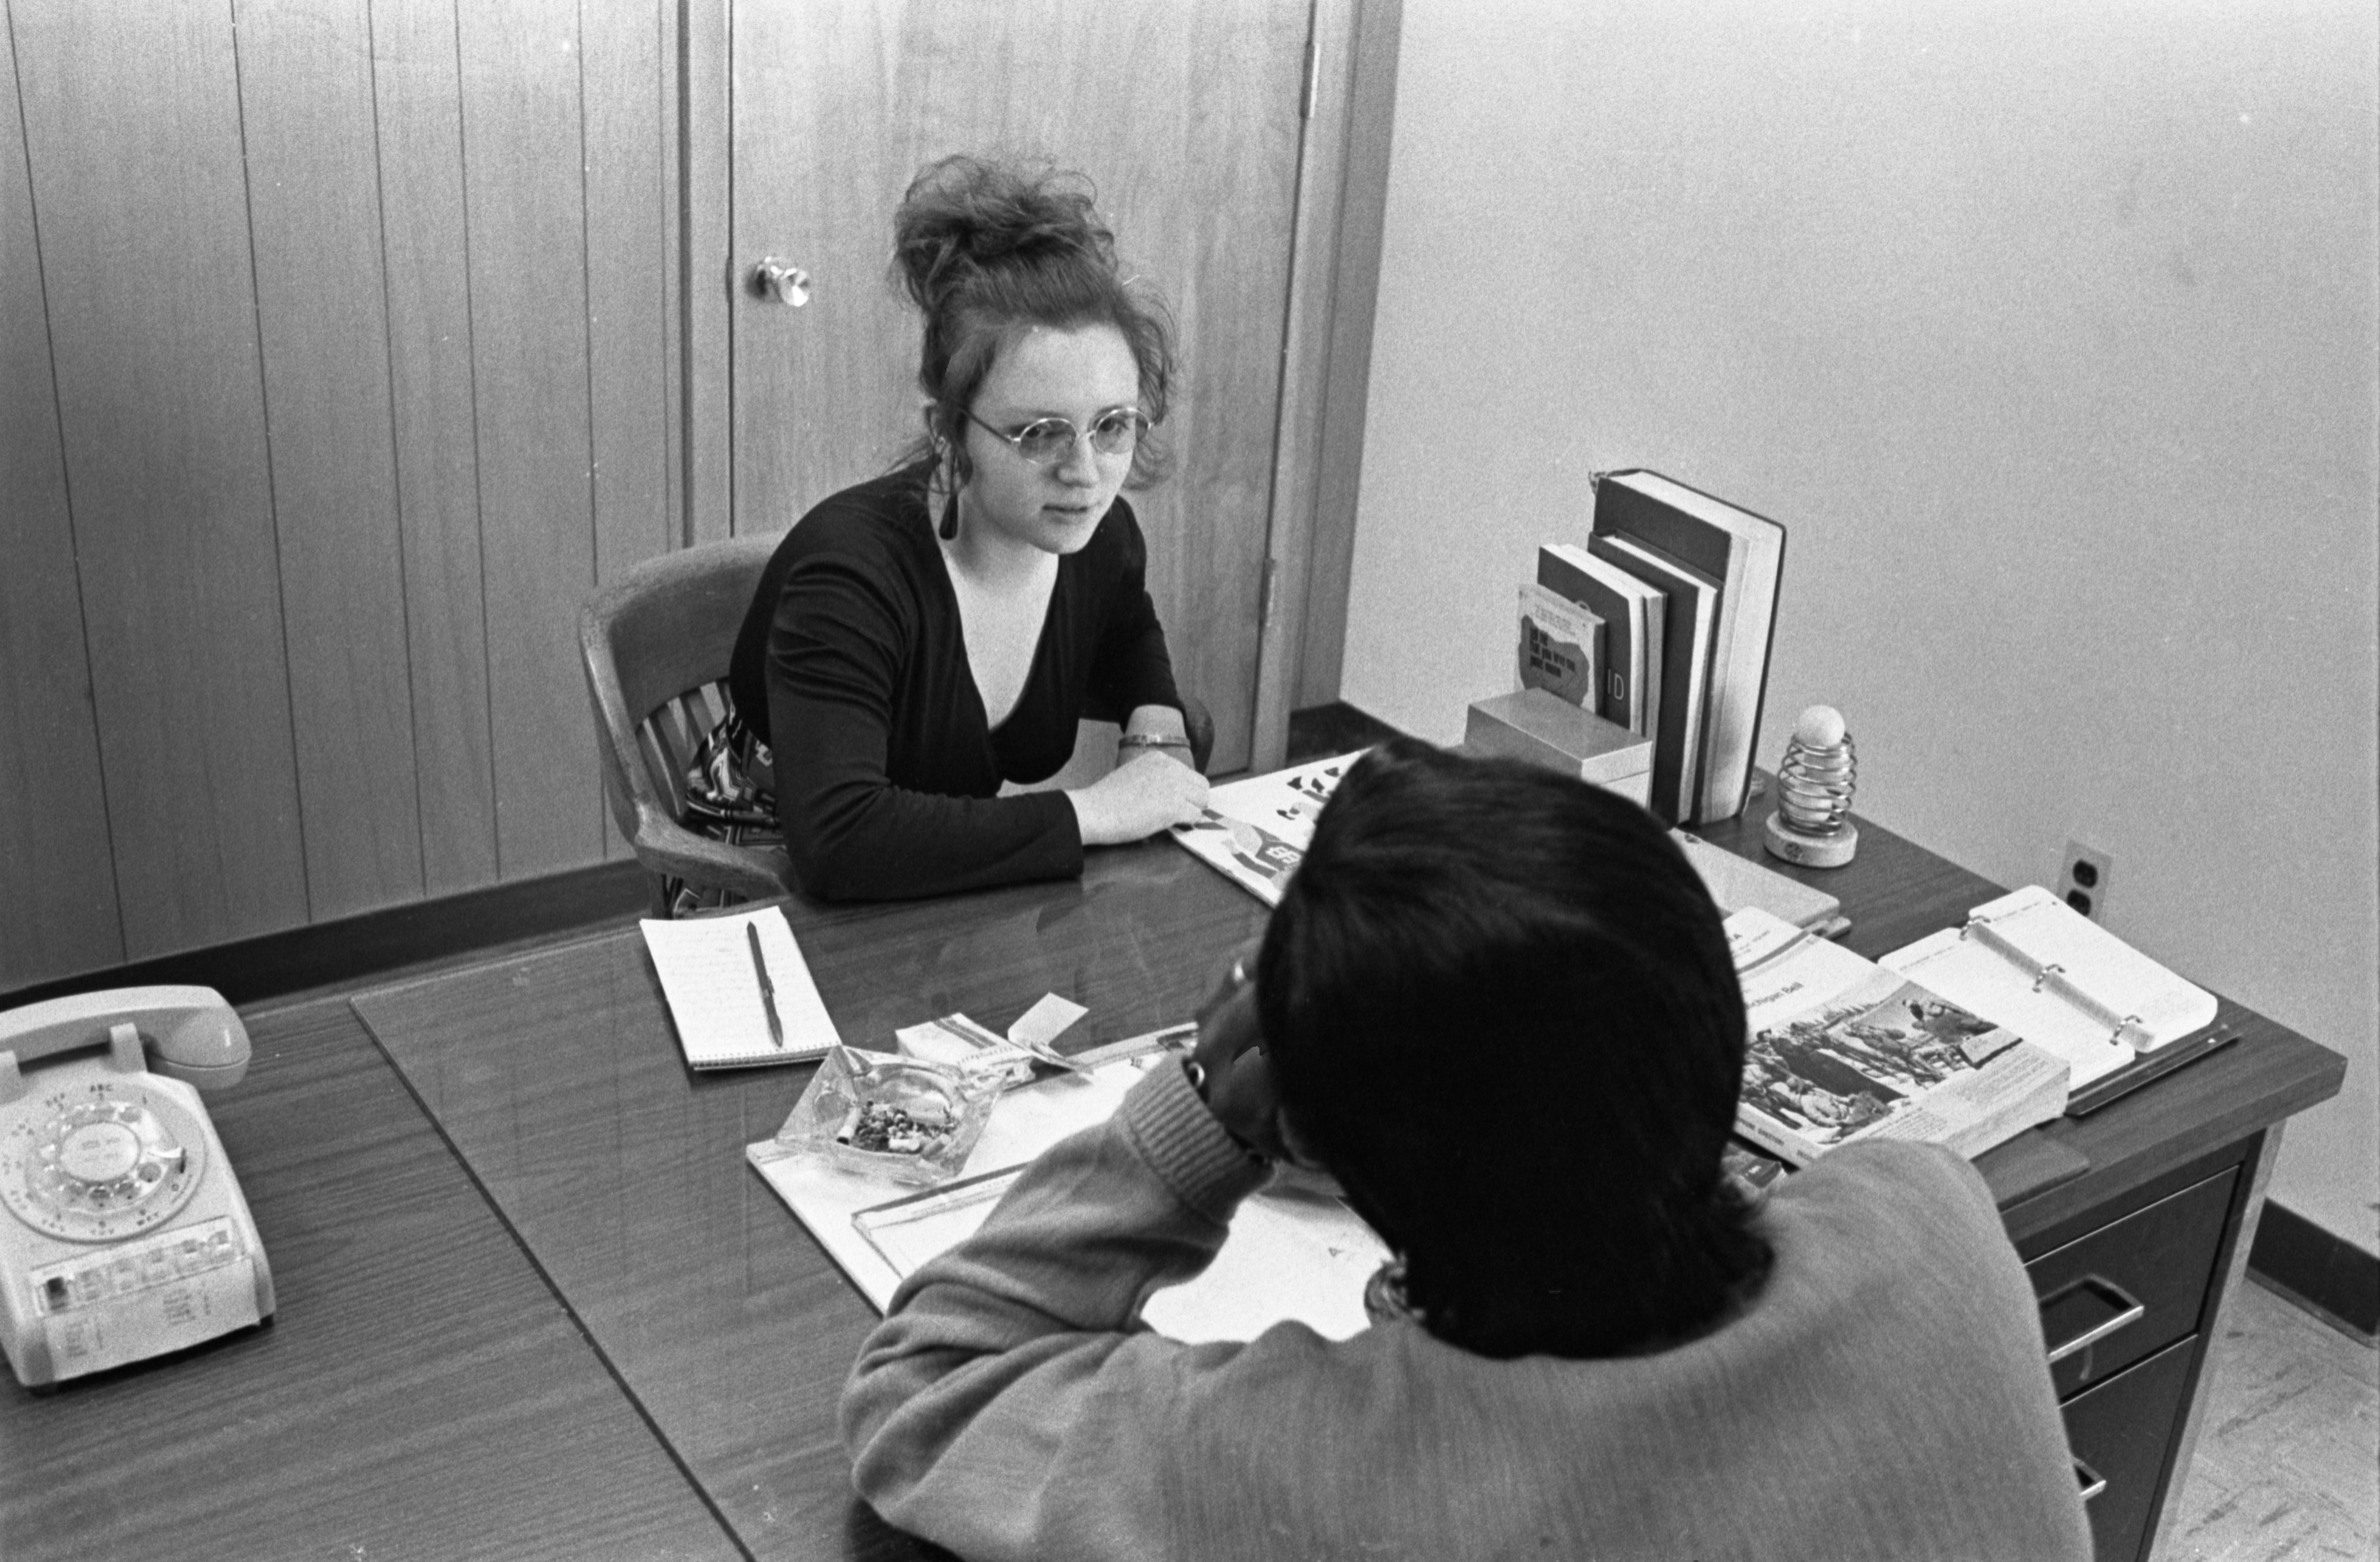 Judy Rush, Counselor At Octagon House, With Former Addict, April 9, 1972 image